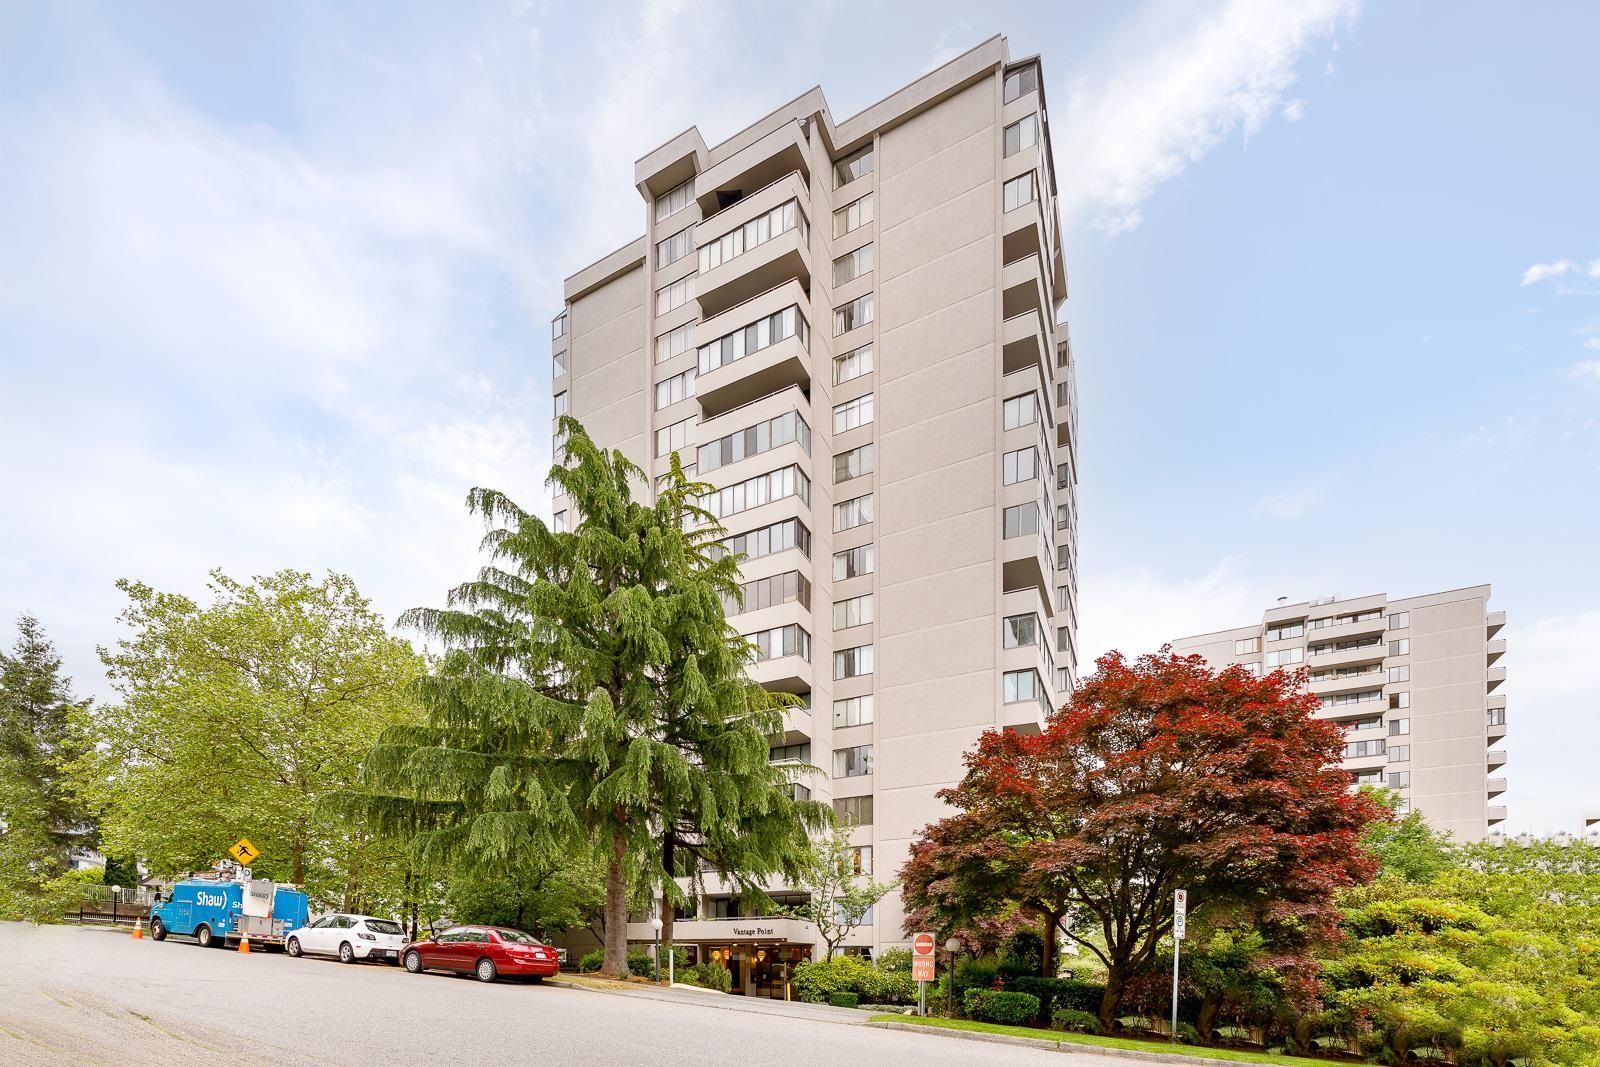 Main Photo: 1001 2020 BELLWOOD Avenue in Burnaby: Brentwood Park Condo for sale (Burnaby North)  : MLS®# R2618196